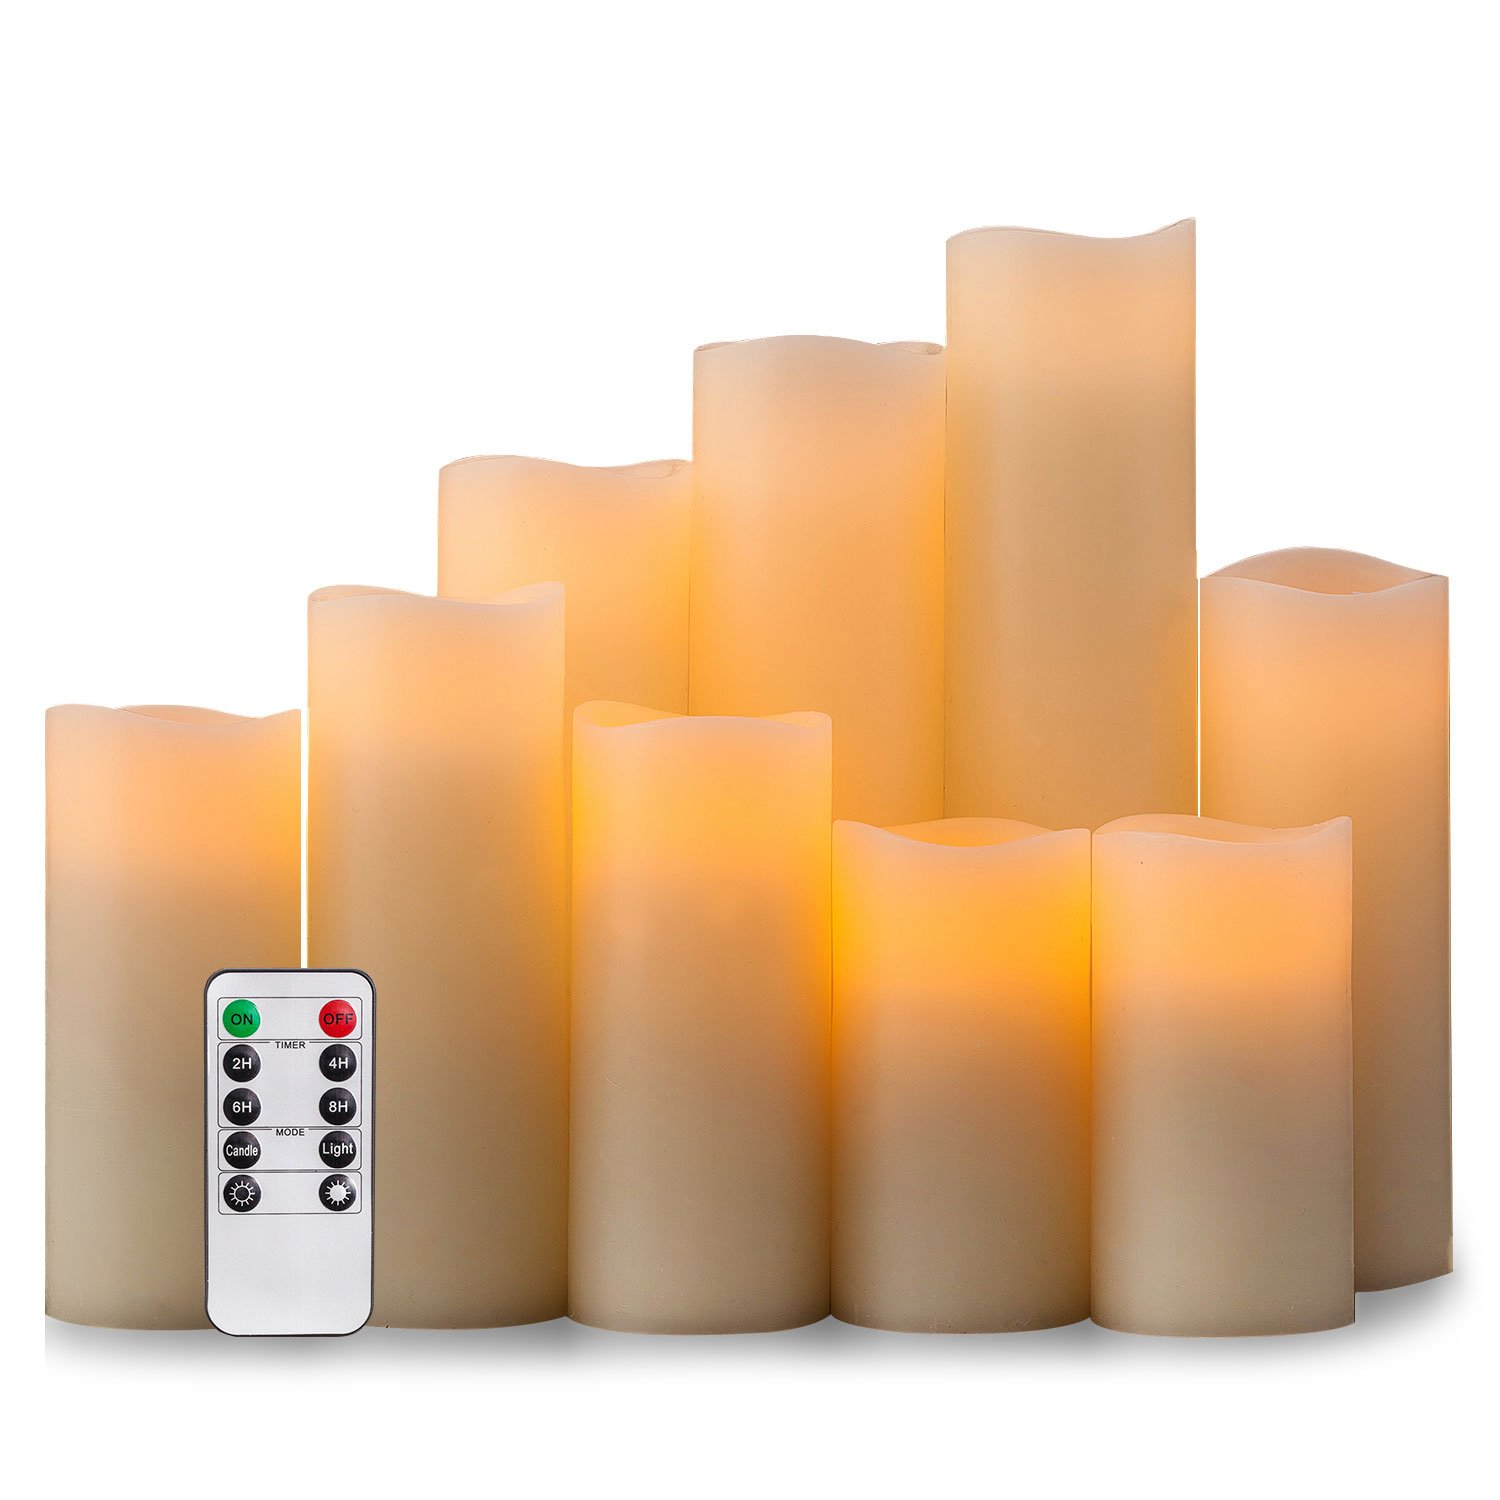 Pandaing Flameless Candles Battery Operated LED Pillar Real Wax Flickering Electric Unscented Candles with Remote Control Cycling 24 Hours Timer, Ivory Color, Set of 9 by Pandaing